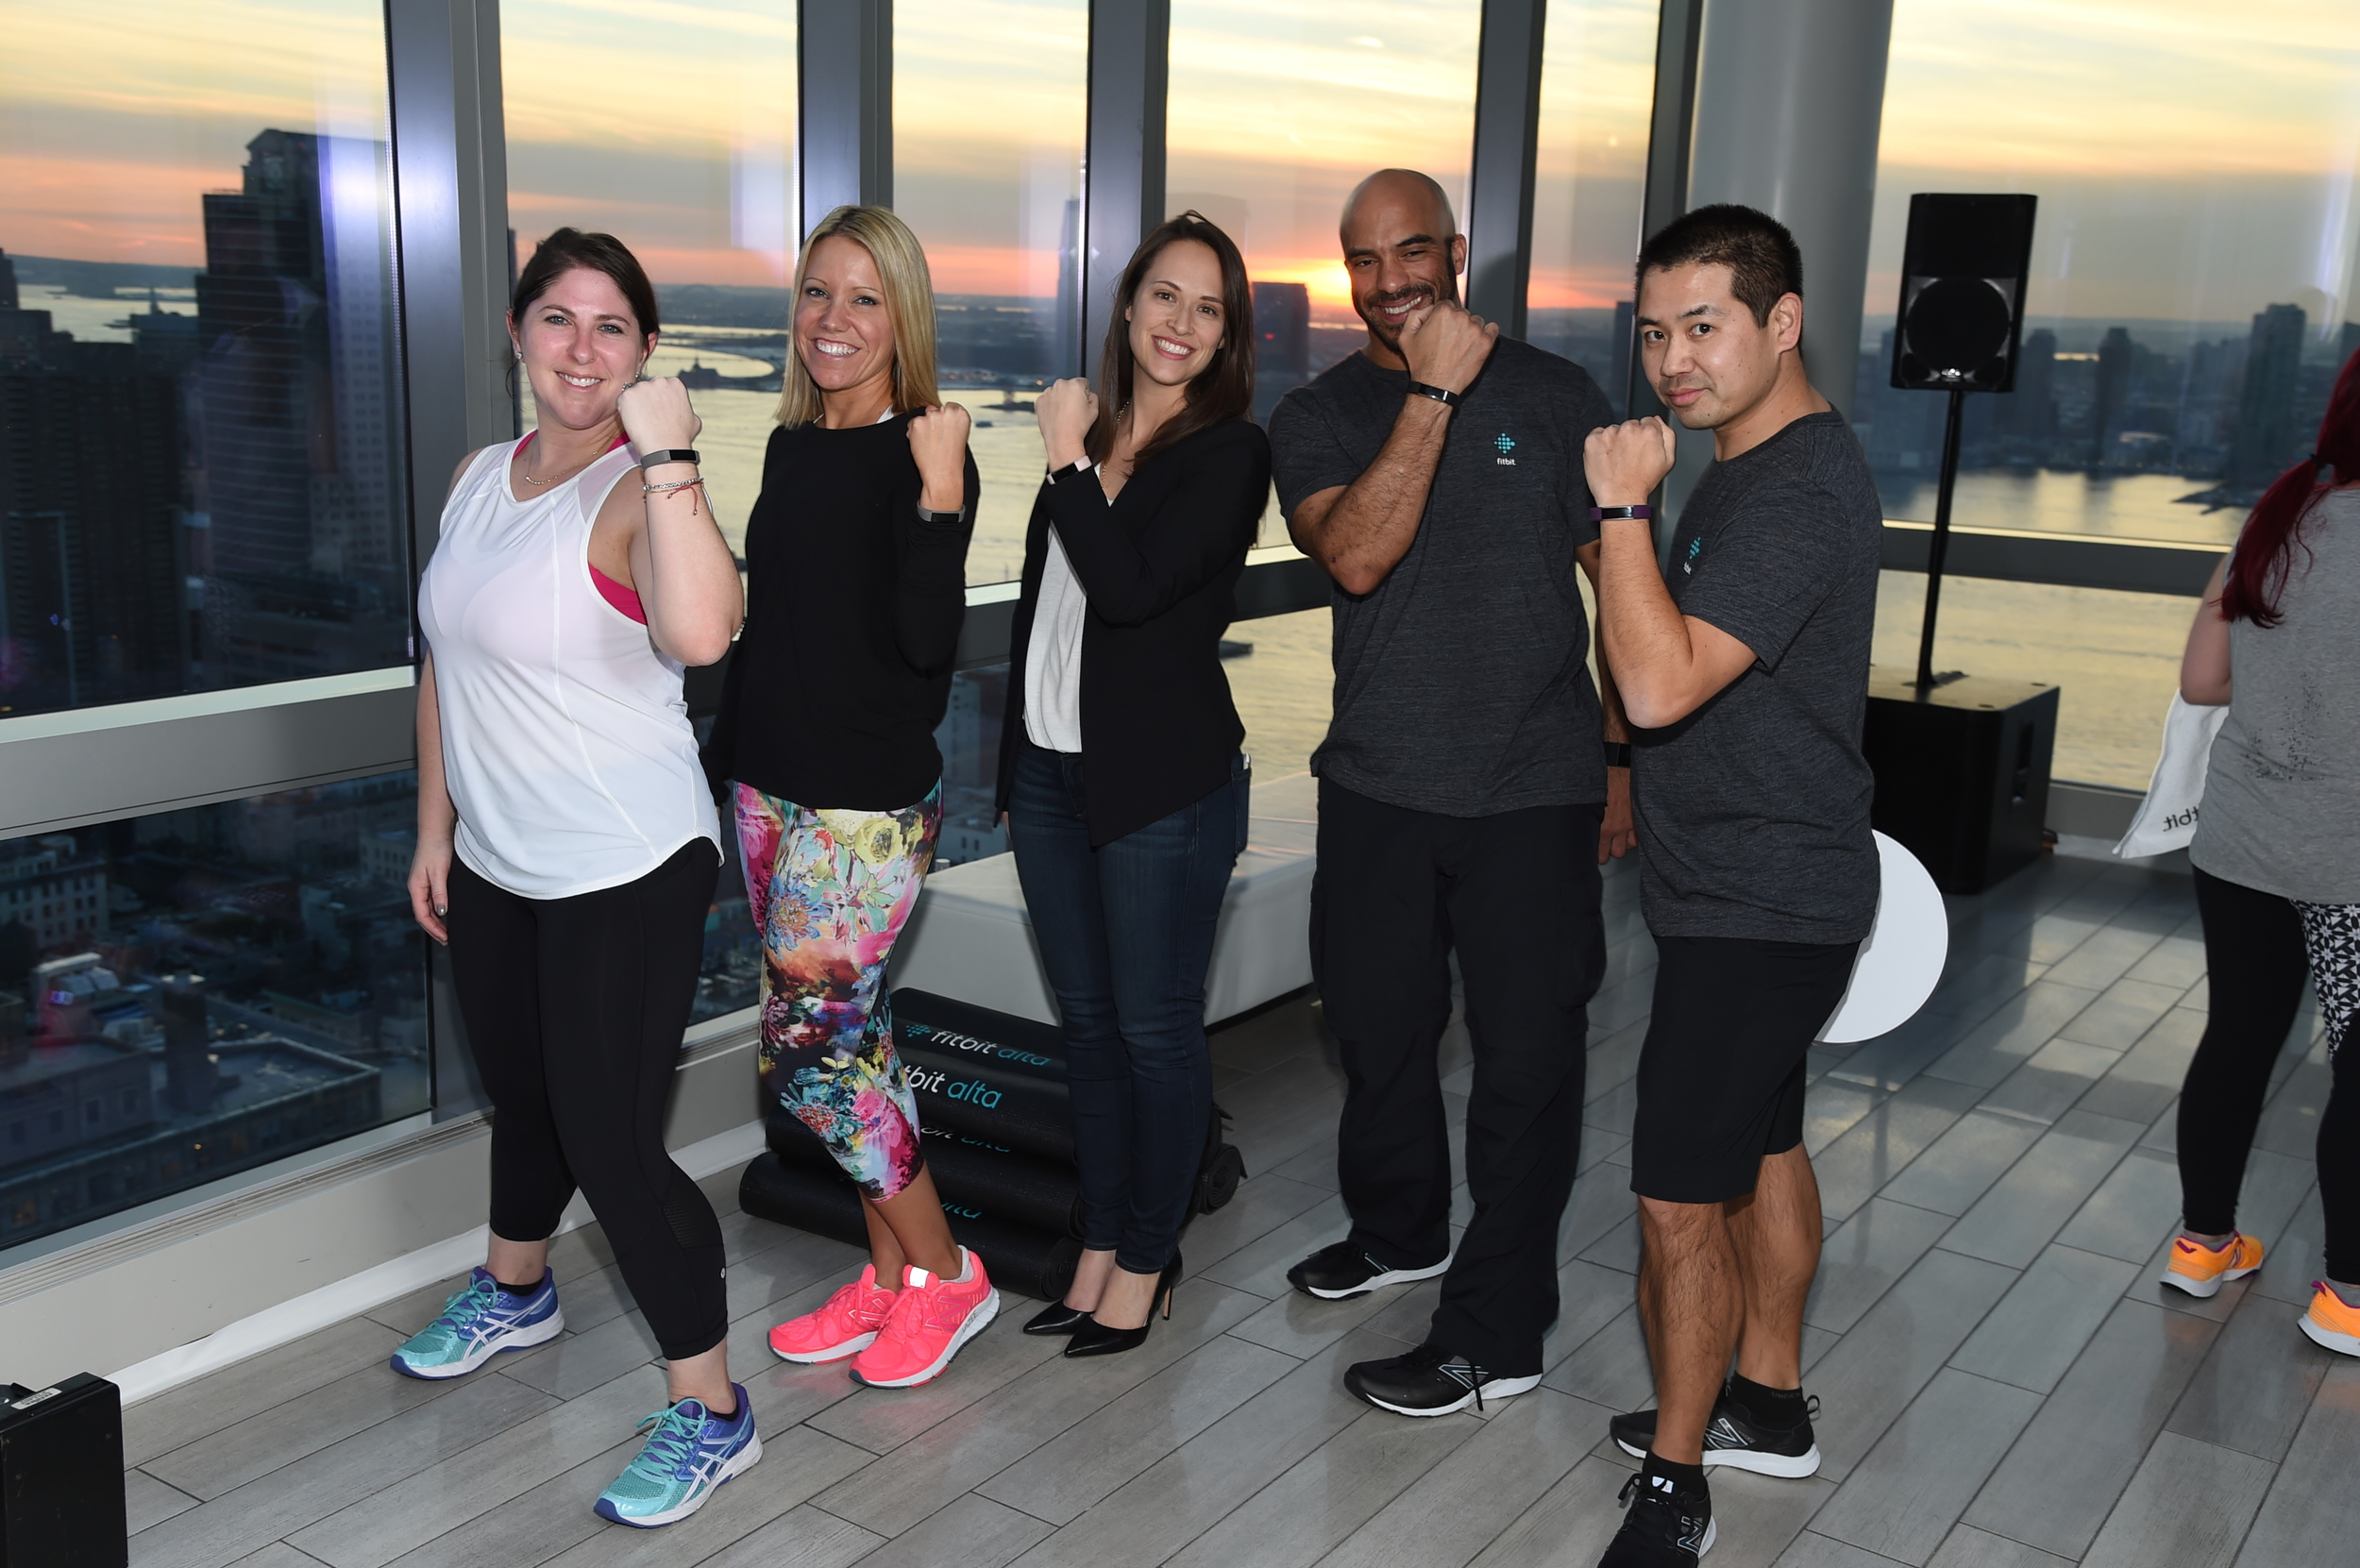 Congratulations to the Fitbit marketing and product development crew on the launch of Fitbit Alta.